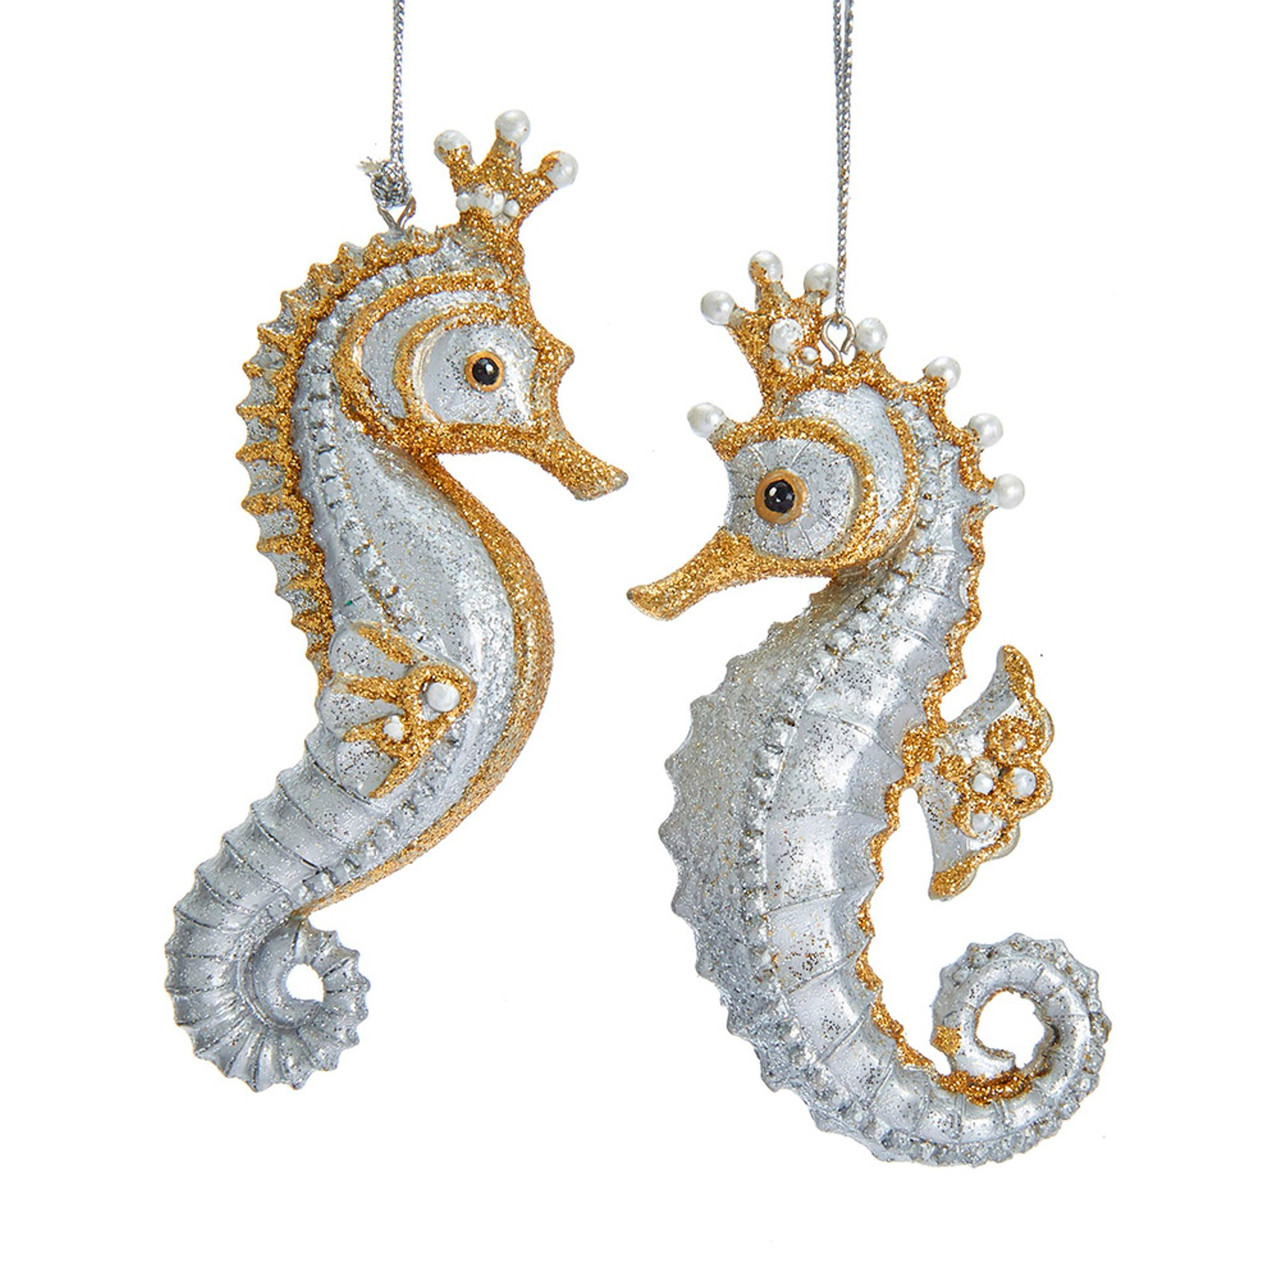 NEW Silver Mille /& Ivory Decorative Mille Sea Horse Figure Ornament